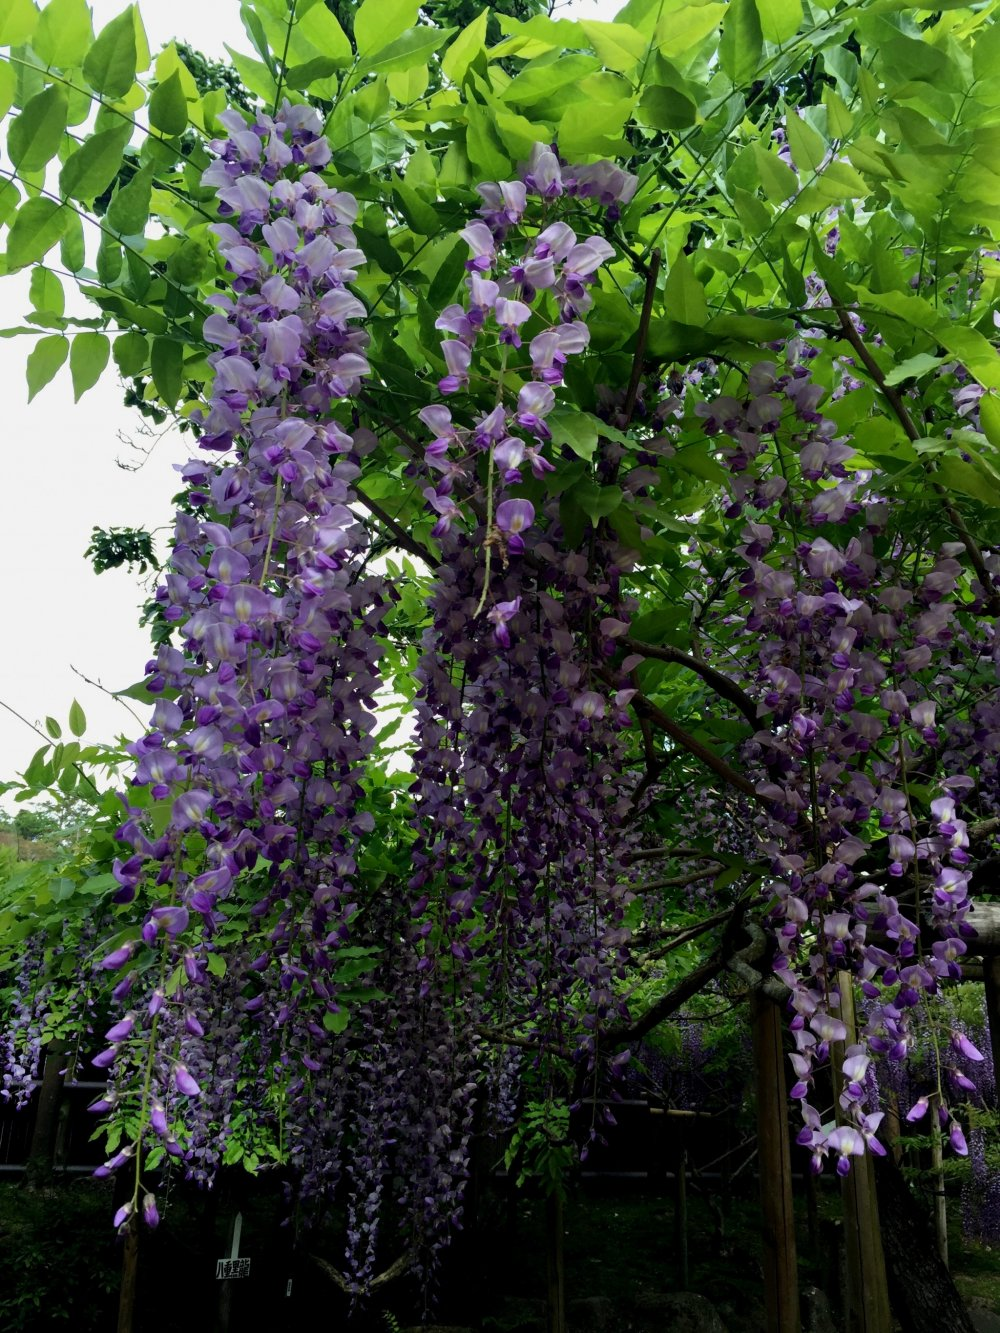 One of more than 20 species of wisteria blooms in the garden